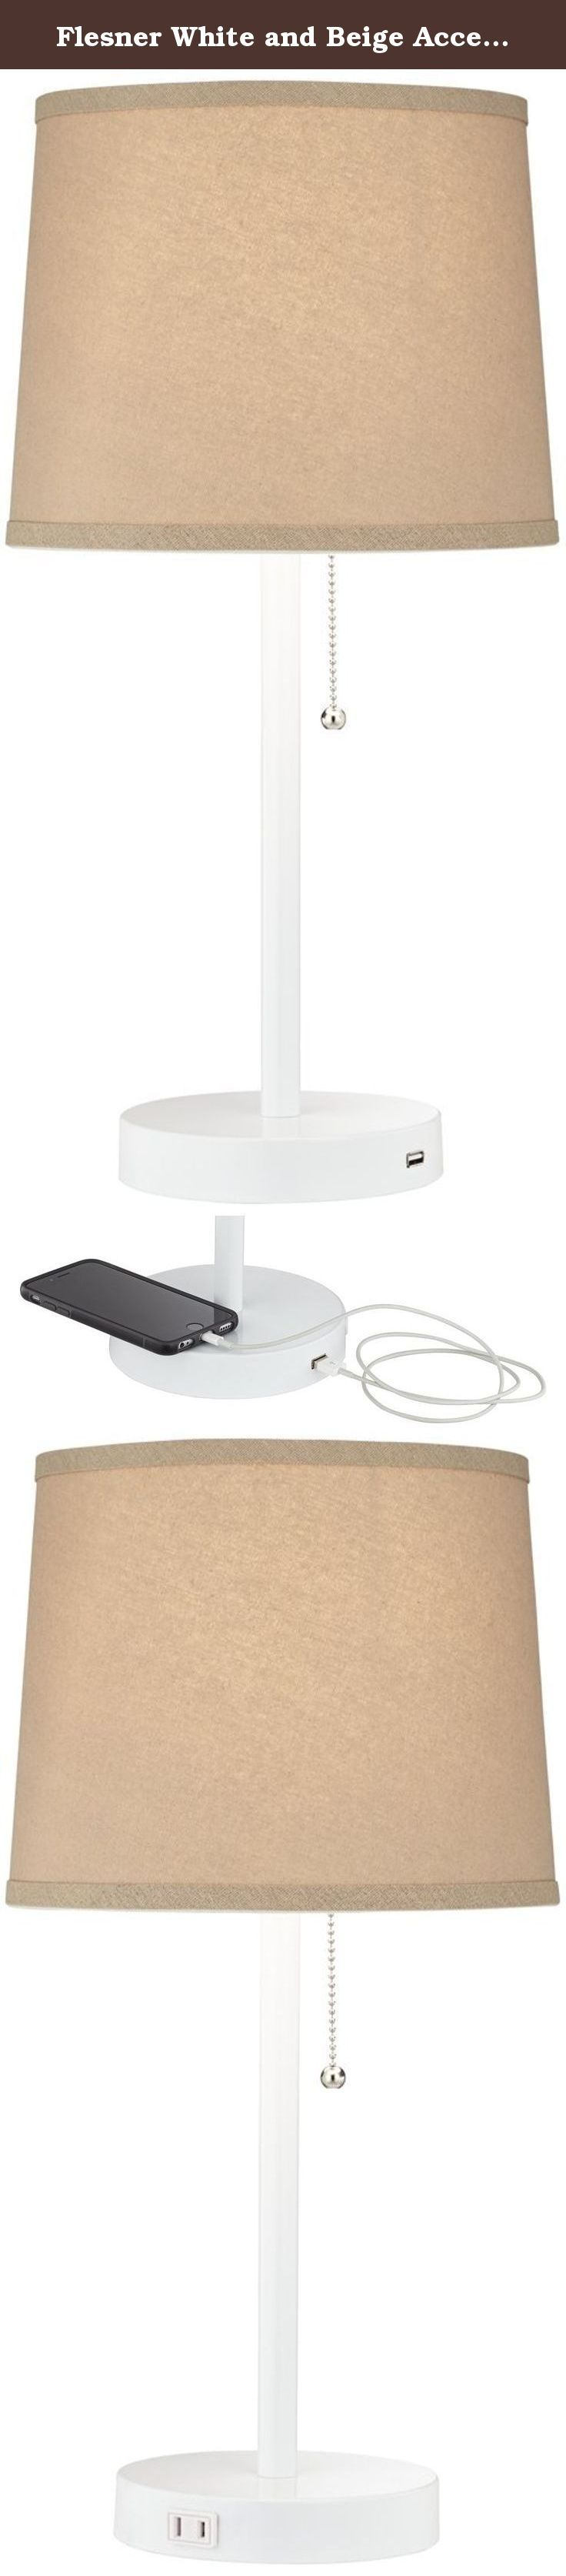 Flesner White and Beige Accent Table Lamp with USB Port. Charge your smart phone or tablet with this stylish and functional accent table lamp with a USB port in the base. A built-in utility plug lets you plug-in another device. The round base and body feature a white finish. A pull switch adds another convenient element making it the perfect addition for a desk or bedside table. - Contemporary table lamp with built-in outlet plug and a 1.0-A type USB port. - White finish base and pole…